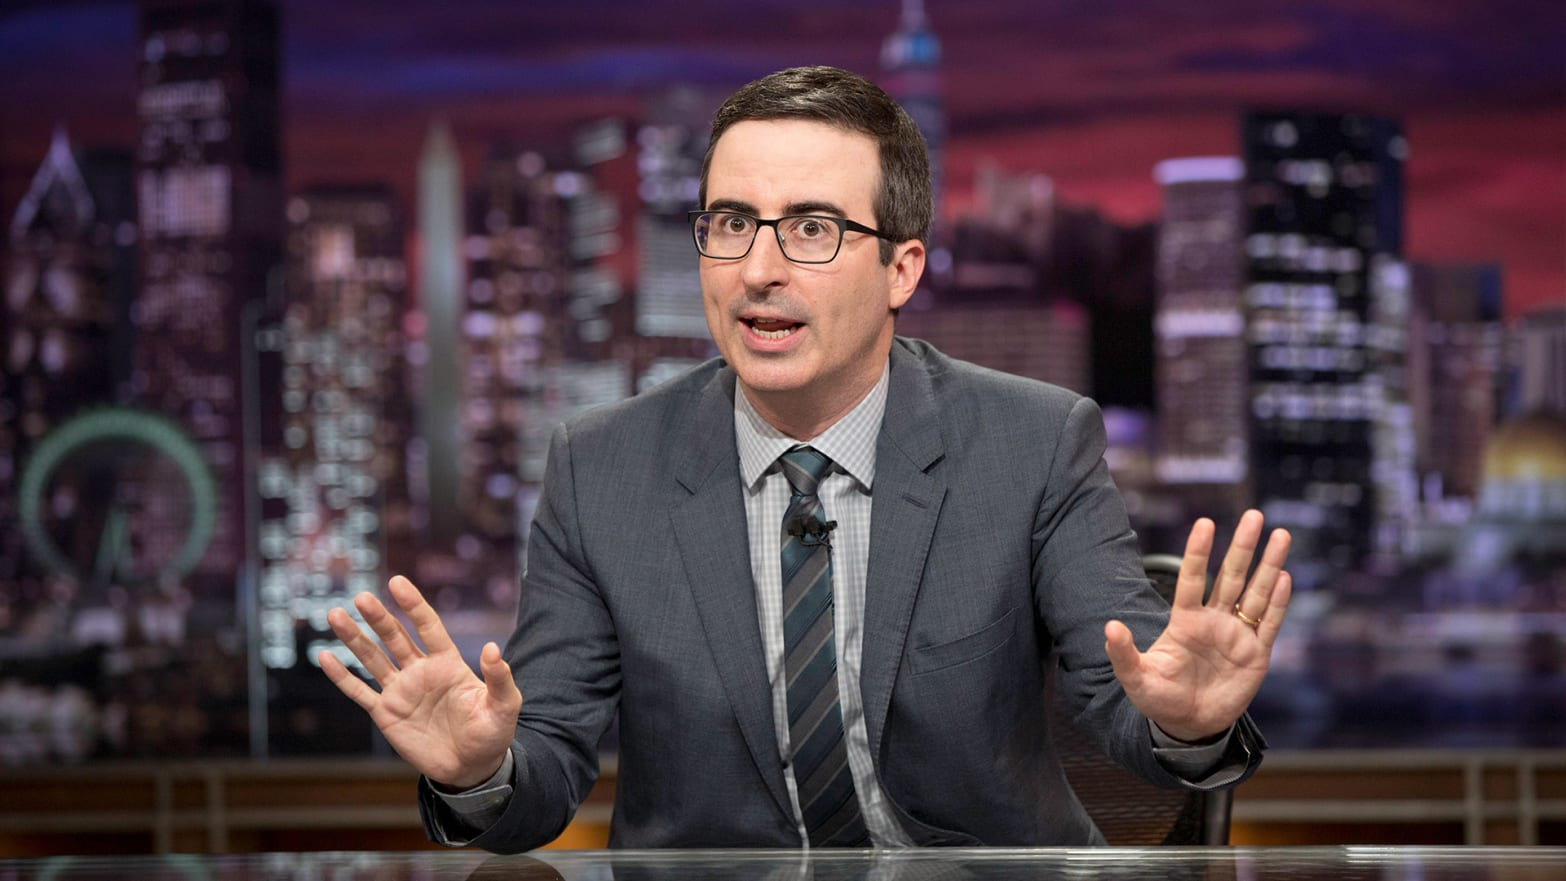 John Oliver Goes Off on Fox News for Pushing 'False Flag' Mail Bomber Conspiracy Theories